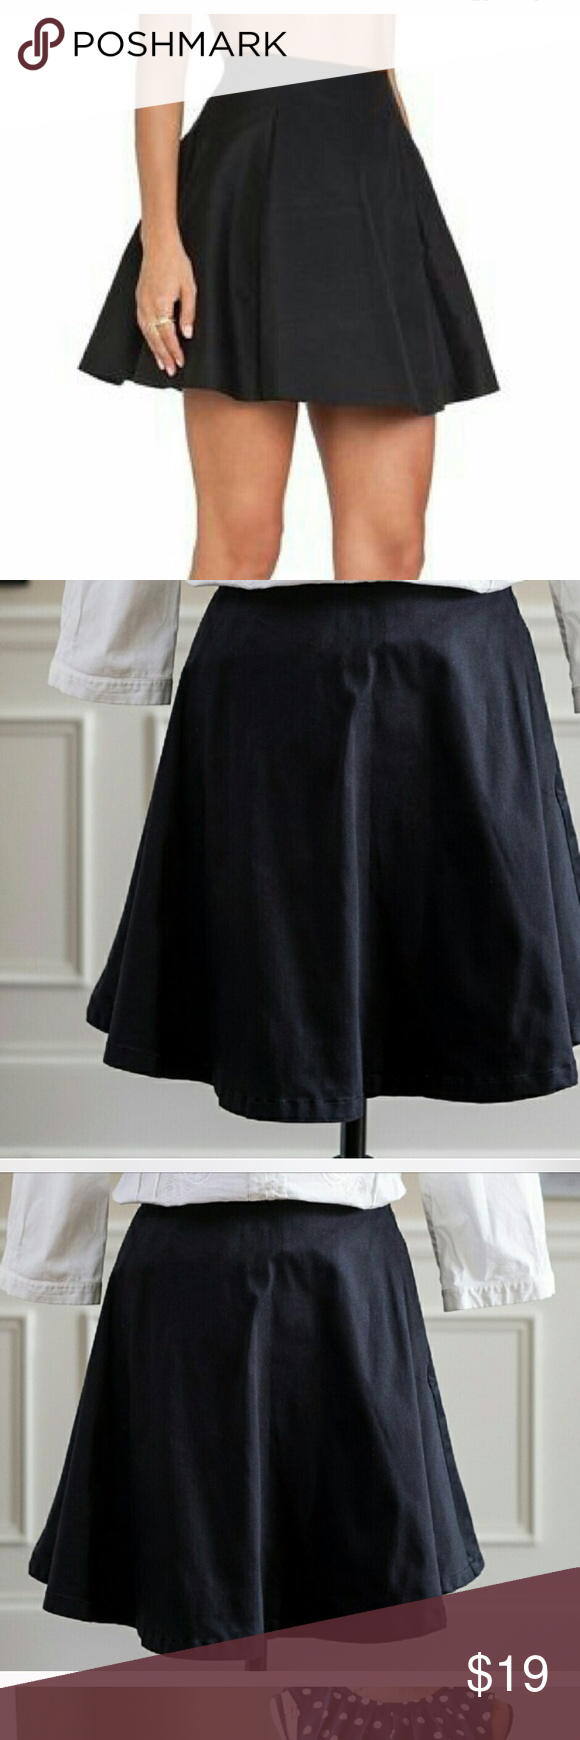 Kate spade ♠️ skater skirt solid black Versatile easy to wear flirty skirt. Used condition some fading kate spade Skirts Circle & Skater